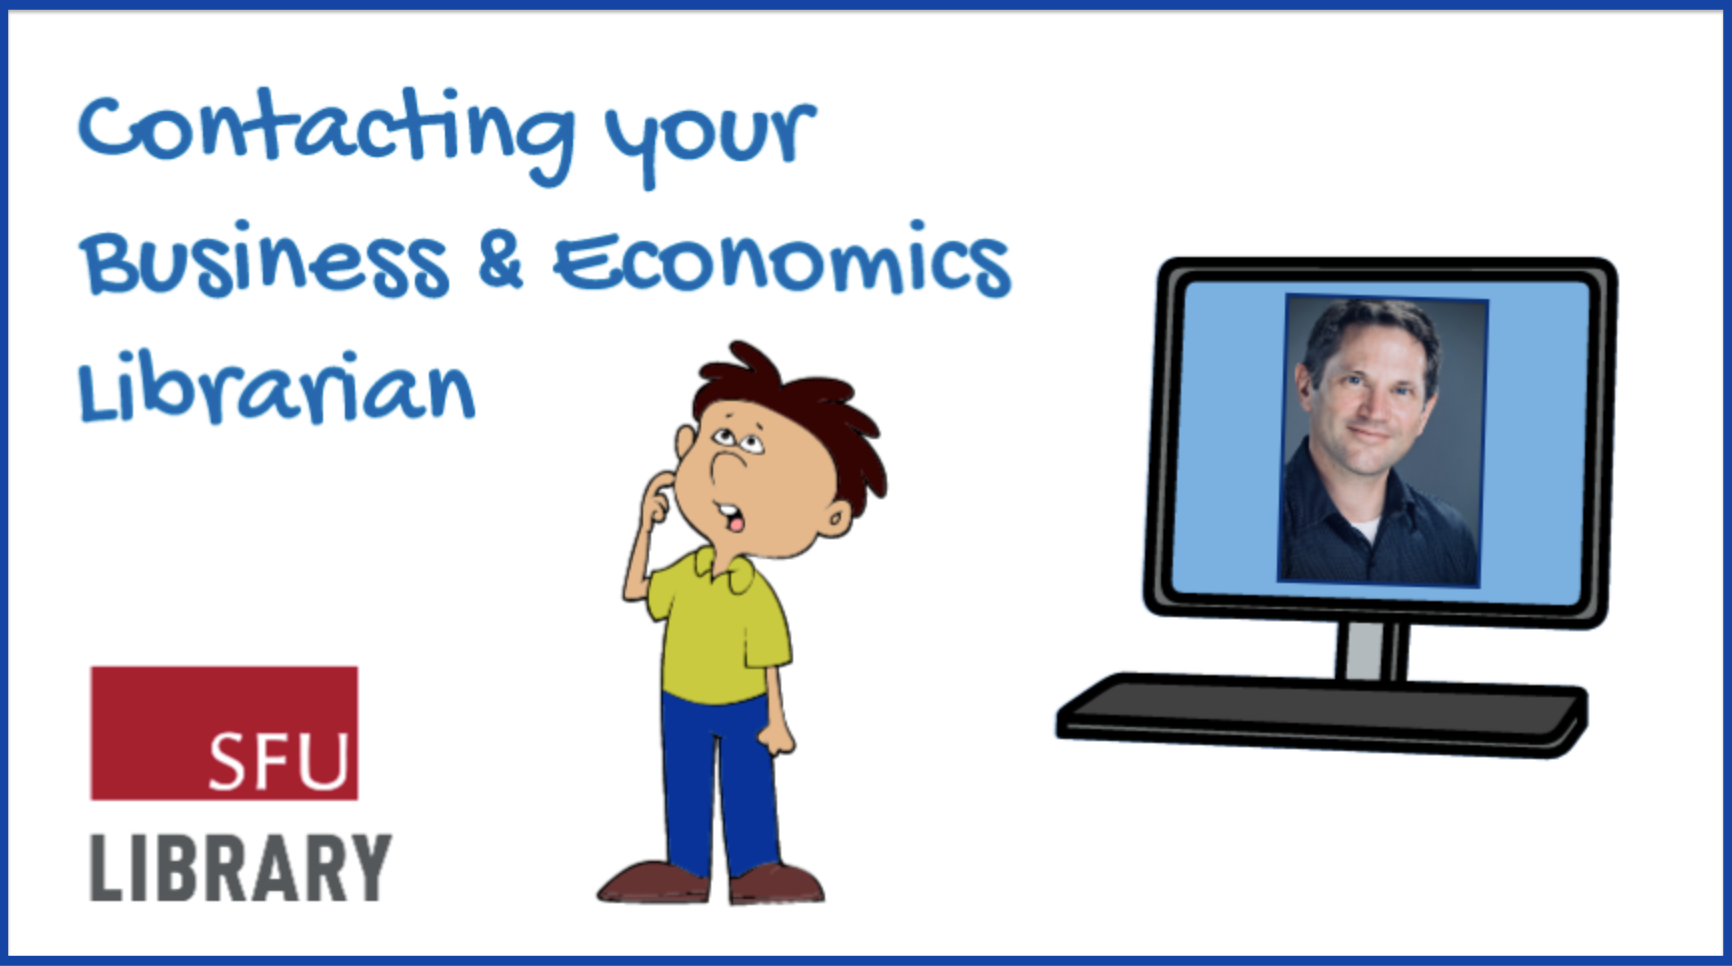 Title screen from video: Contacting Your Business & Economics Librarian.